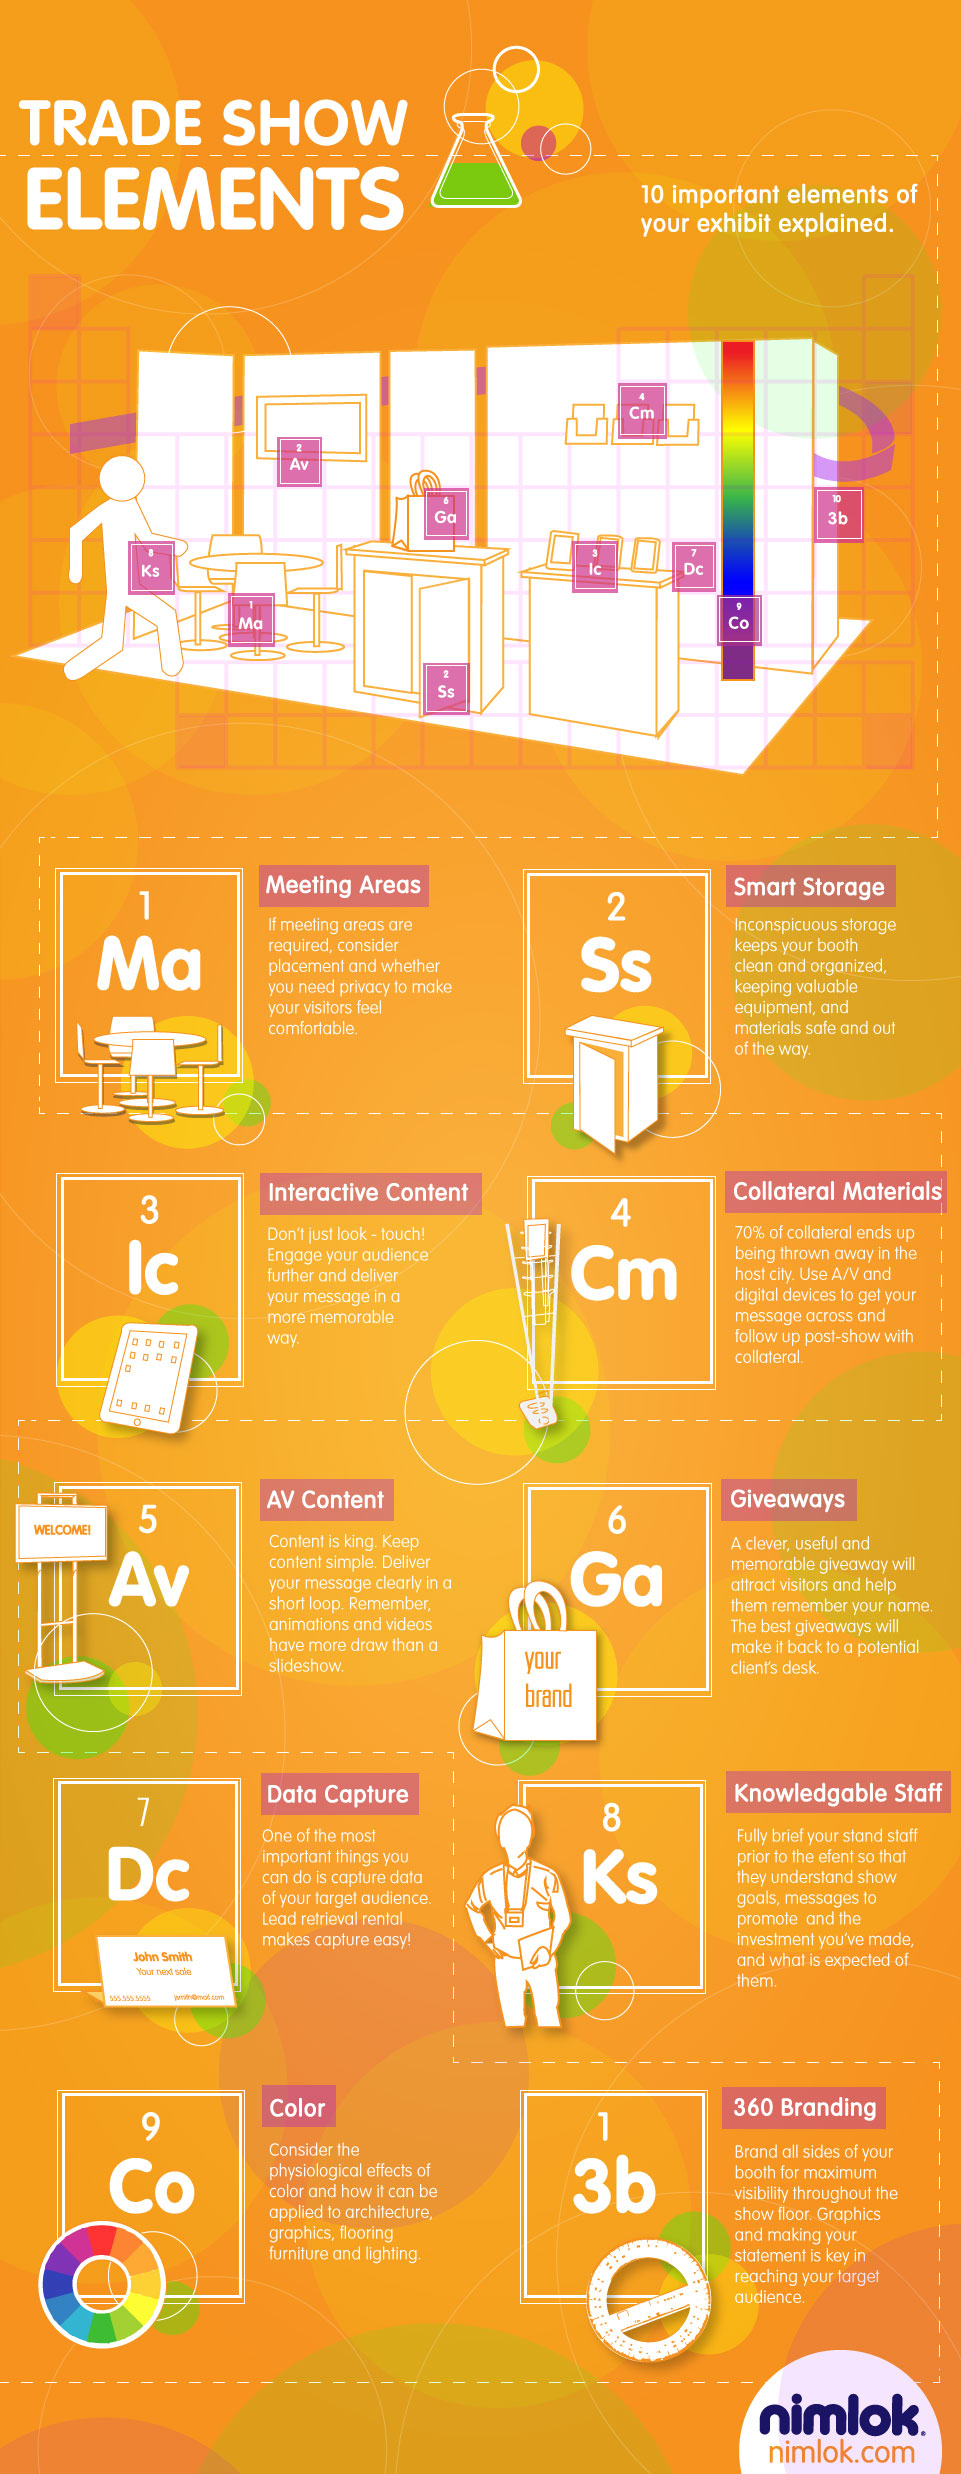 trade show display elements infographic